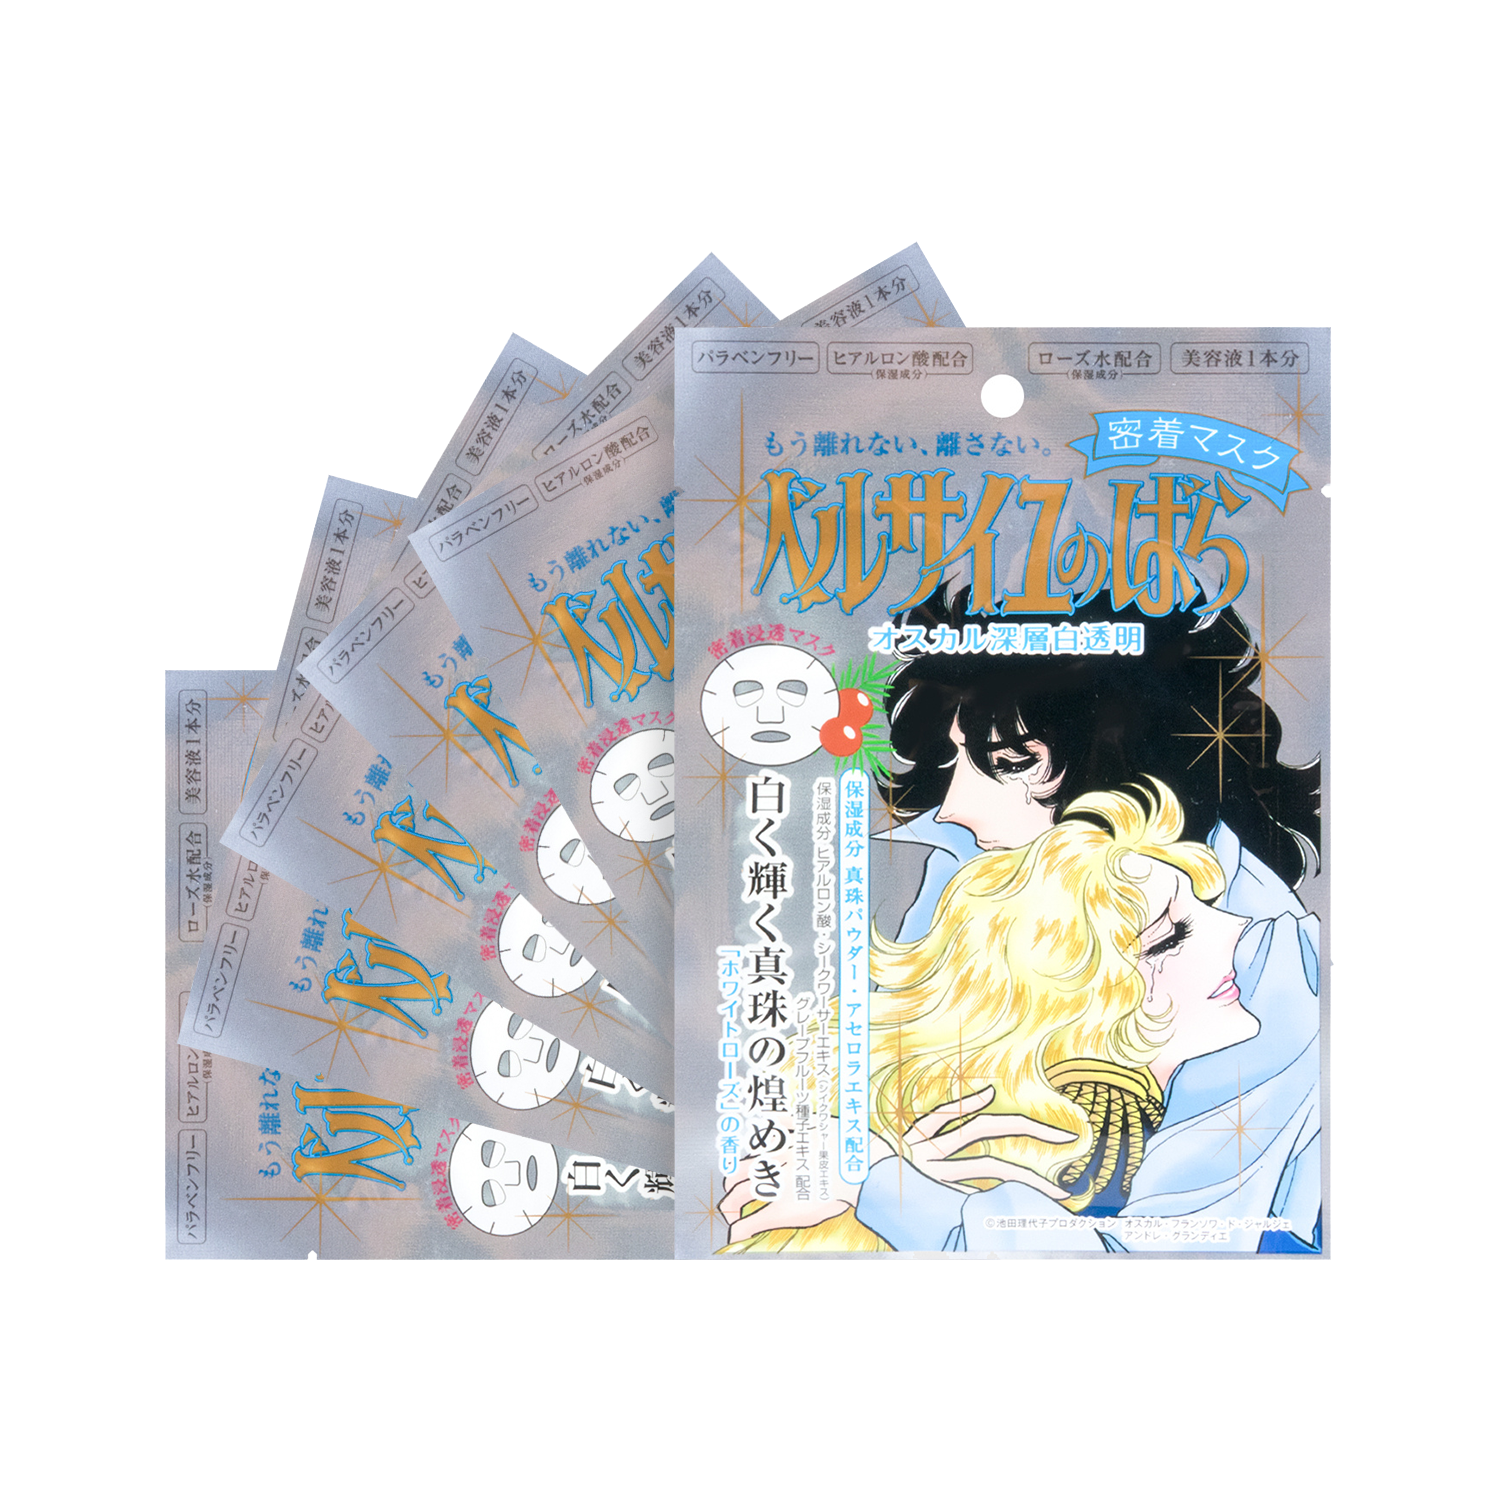 CAREER BEAUTE The Rose of Versailles Whitening Facial Mask 6 sheets